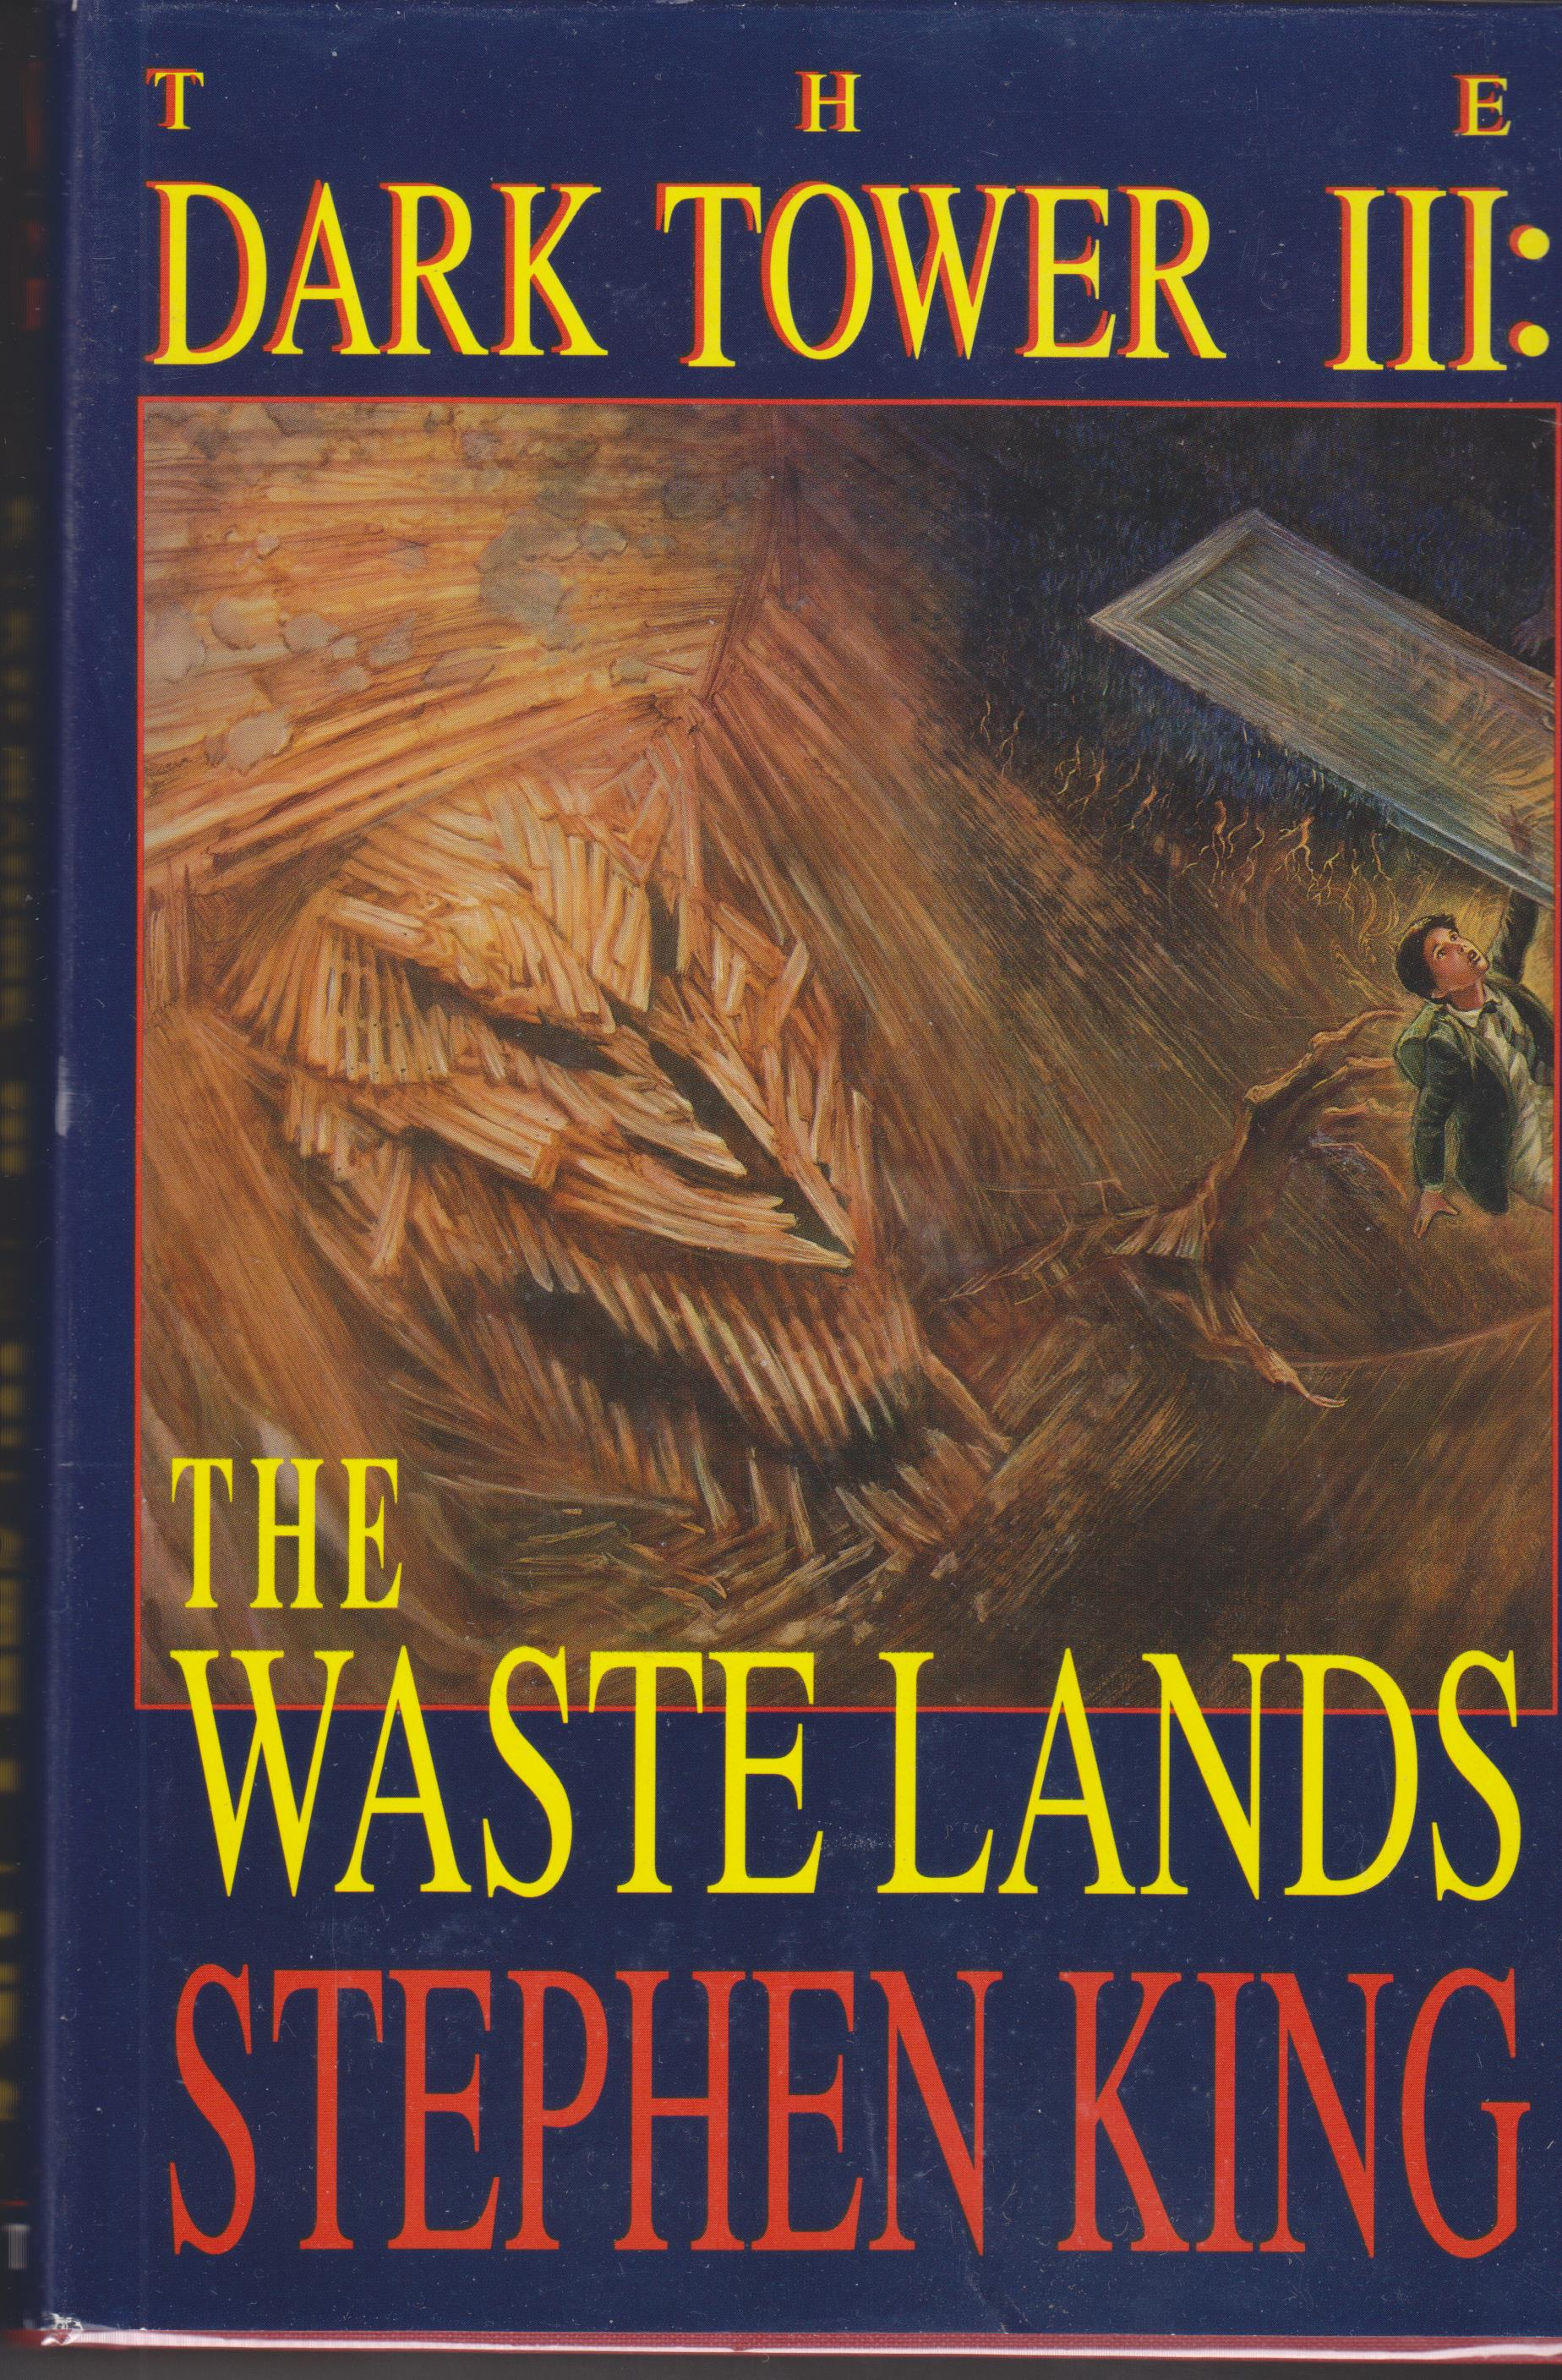 Image for The Dark Tower III. The Waste Lands